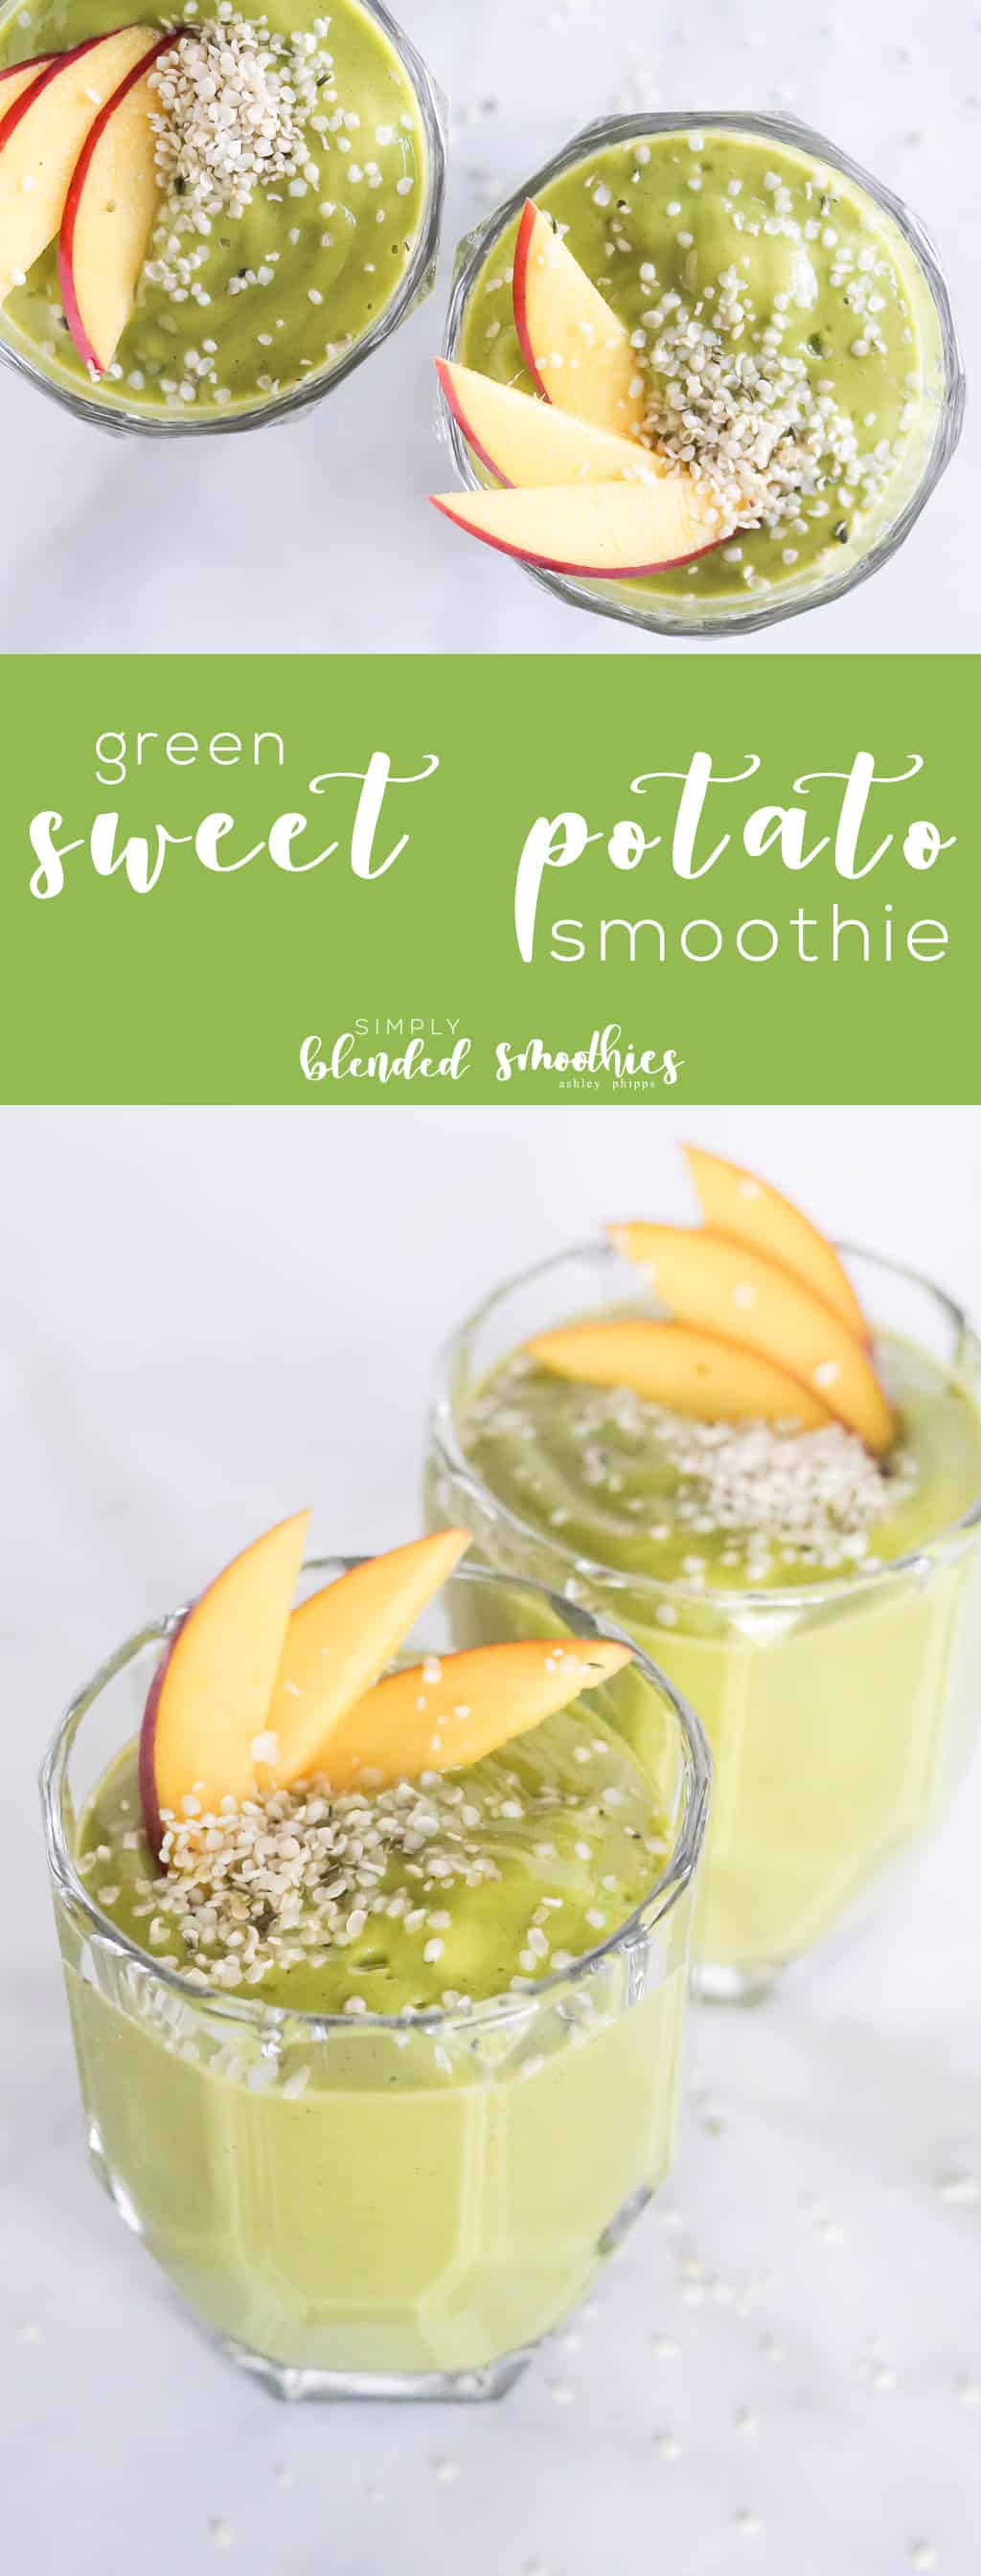 Green Sweet Potato Smoothie - this healthy and delicious green smoothie is the perfect blend of delicious fall flavors